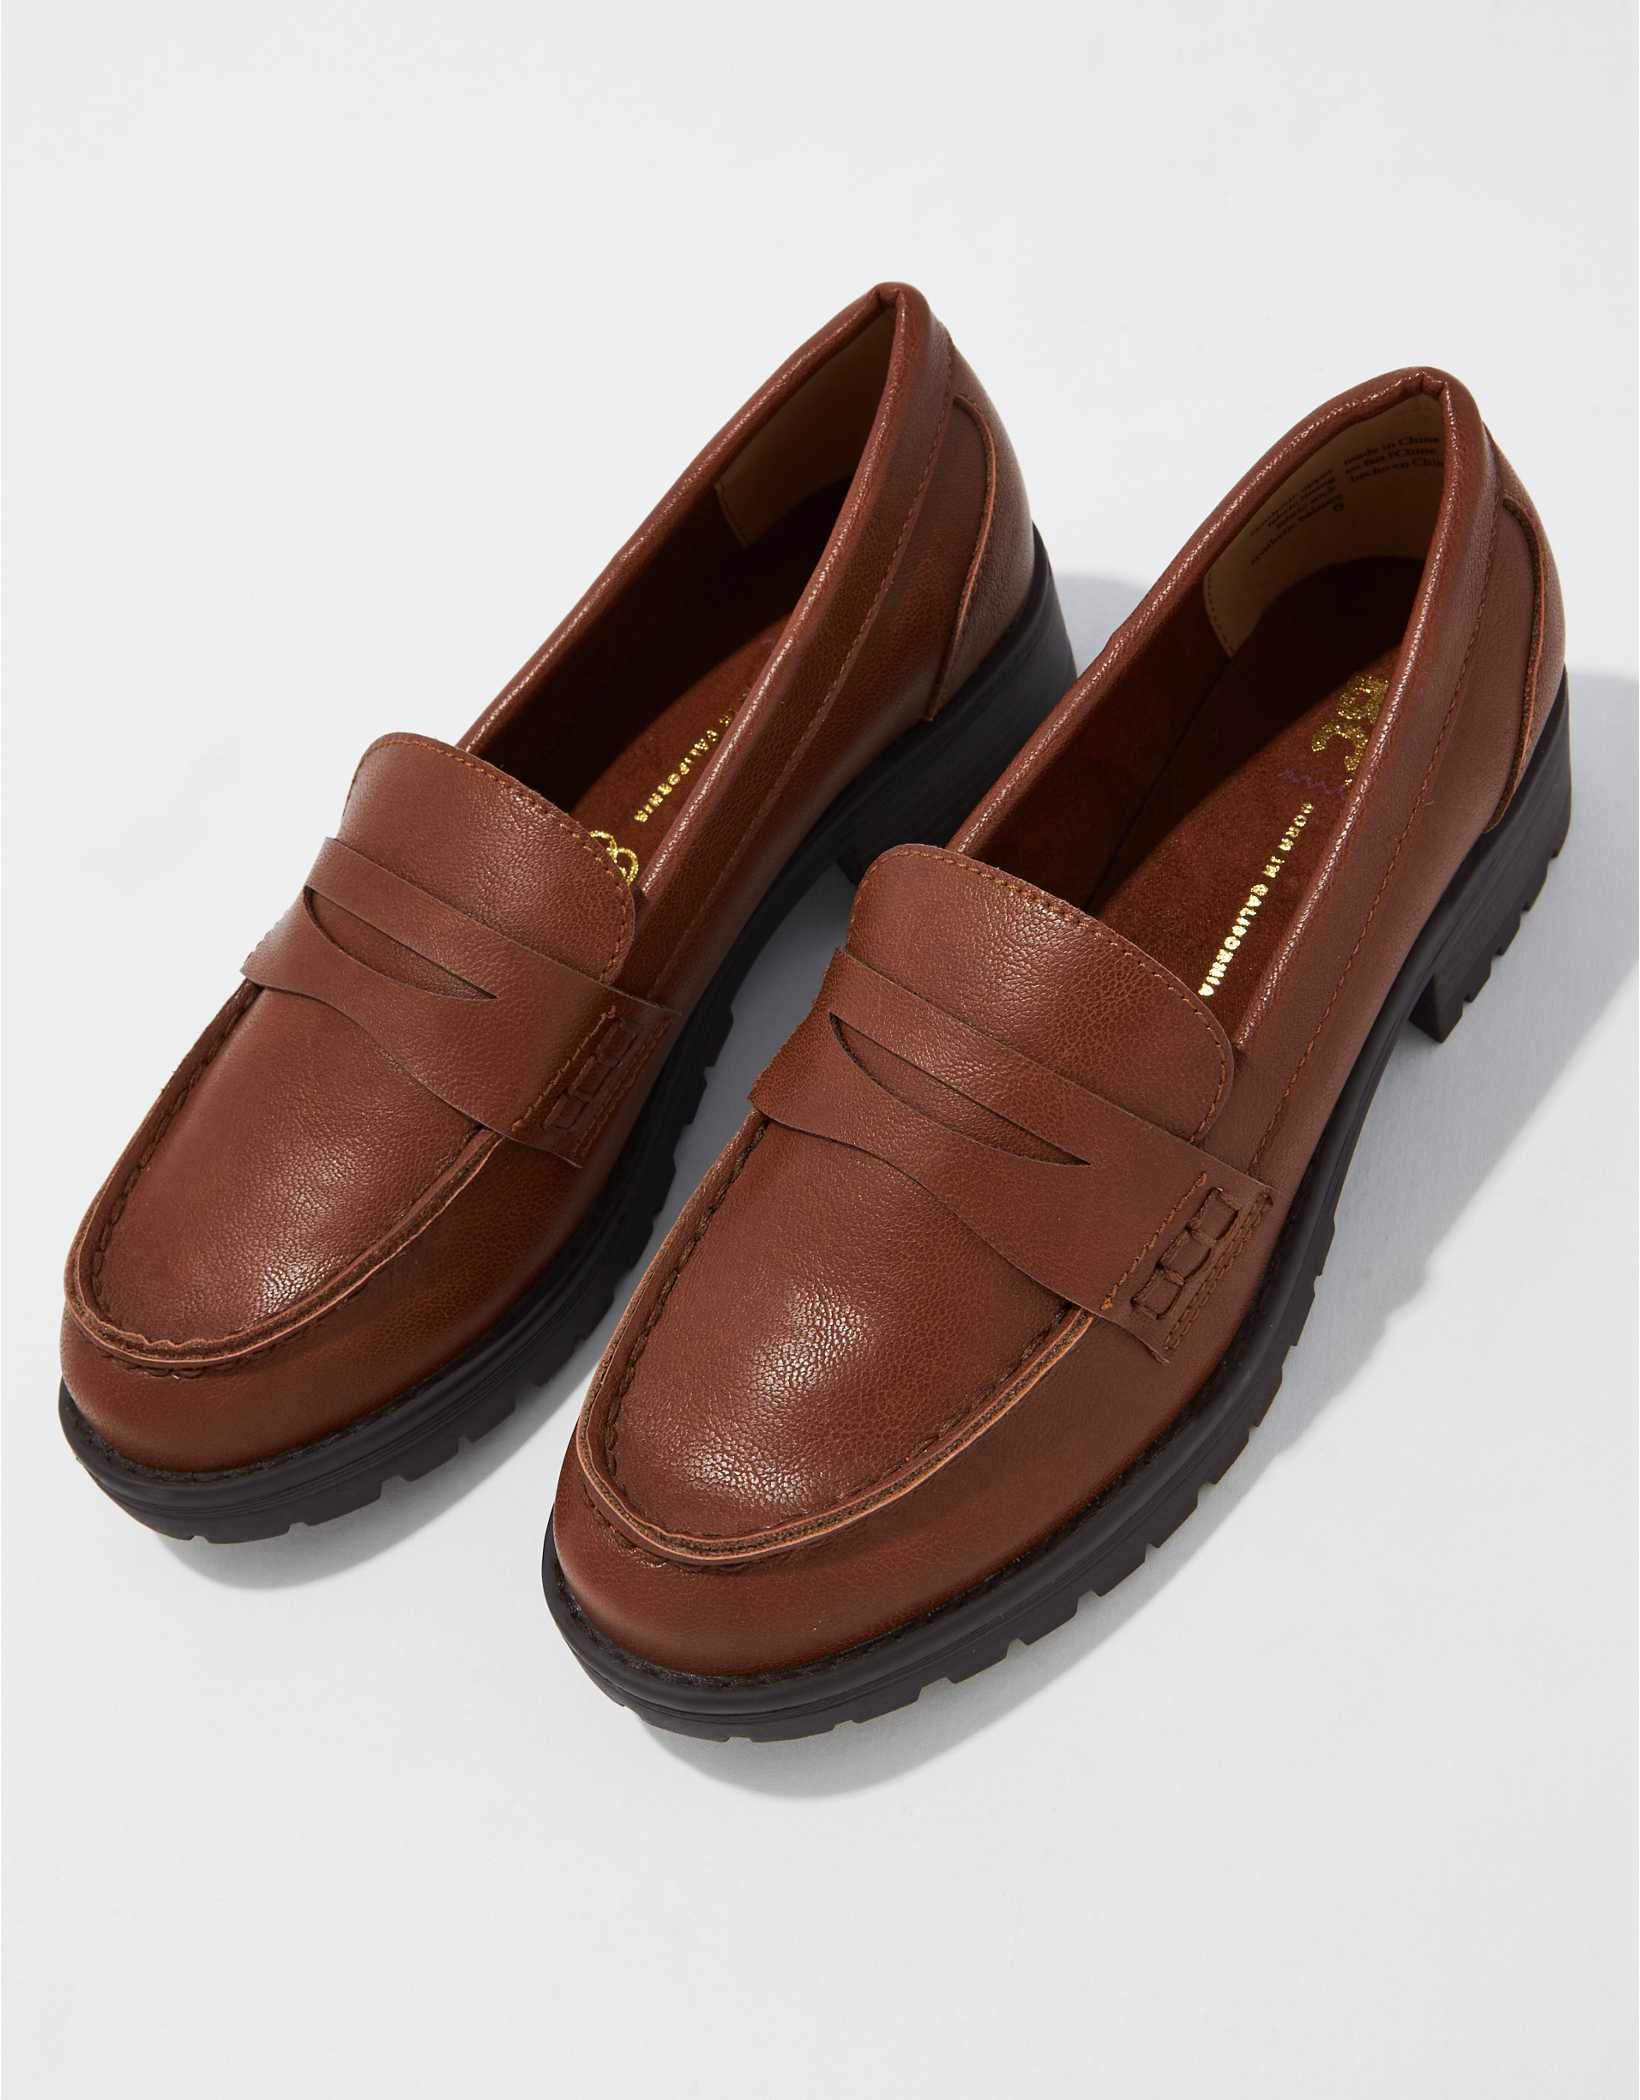 BC Footwear Roulette Loafer